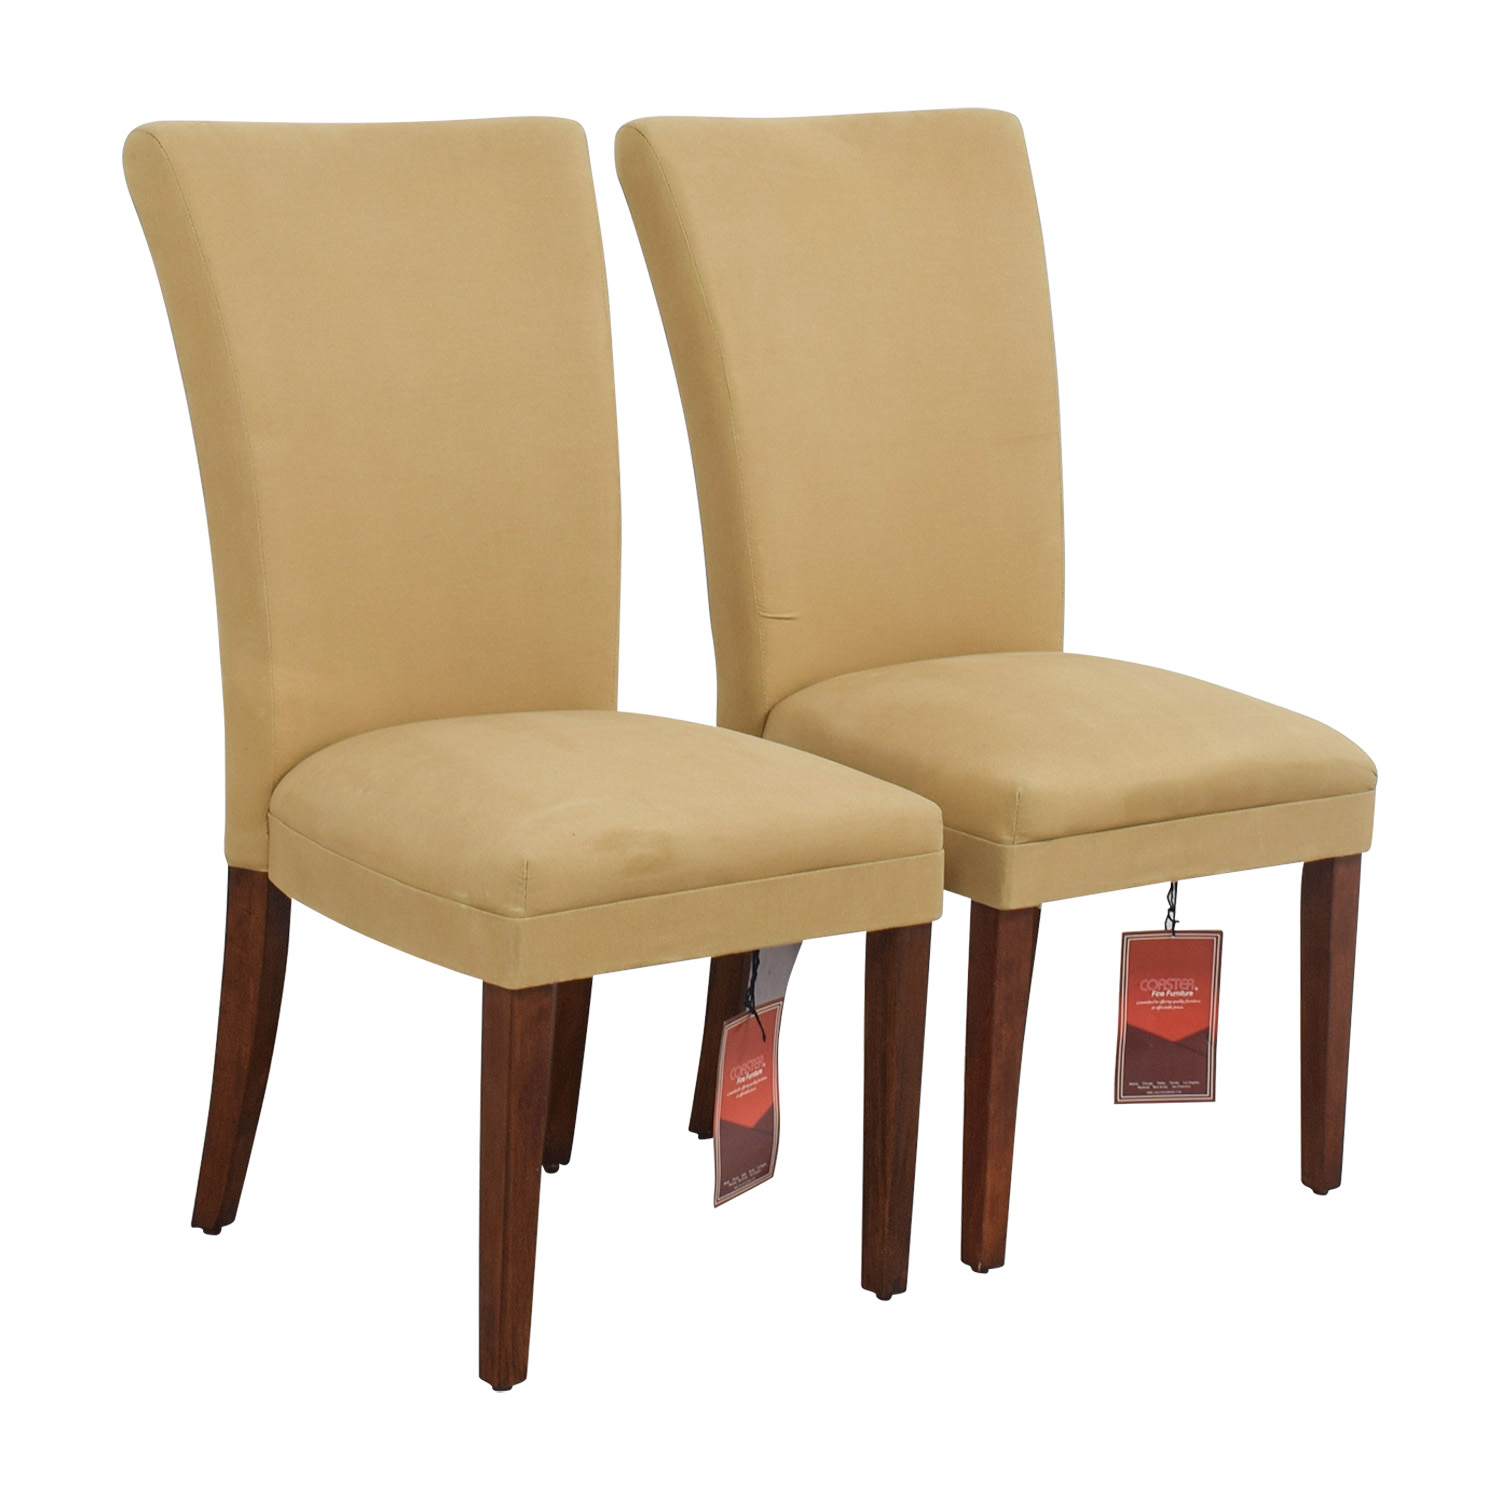 buy Coaster High Back Tan Chairs Coaster Dining Chairs